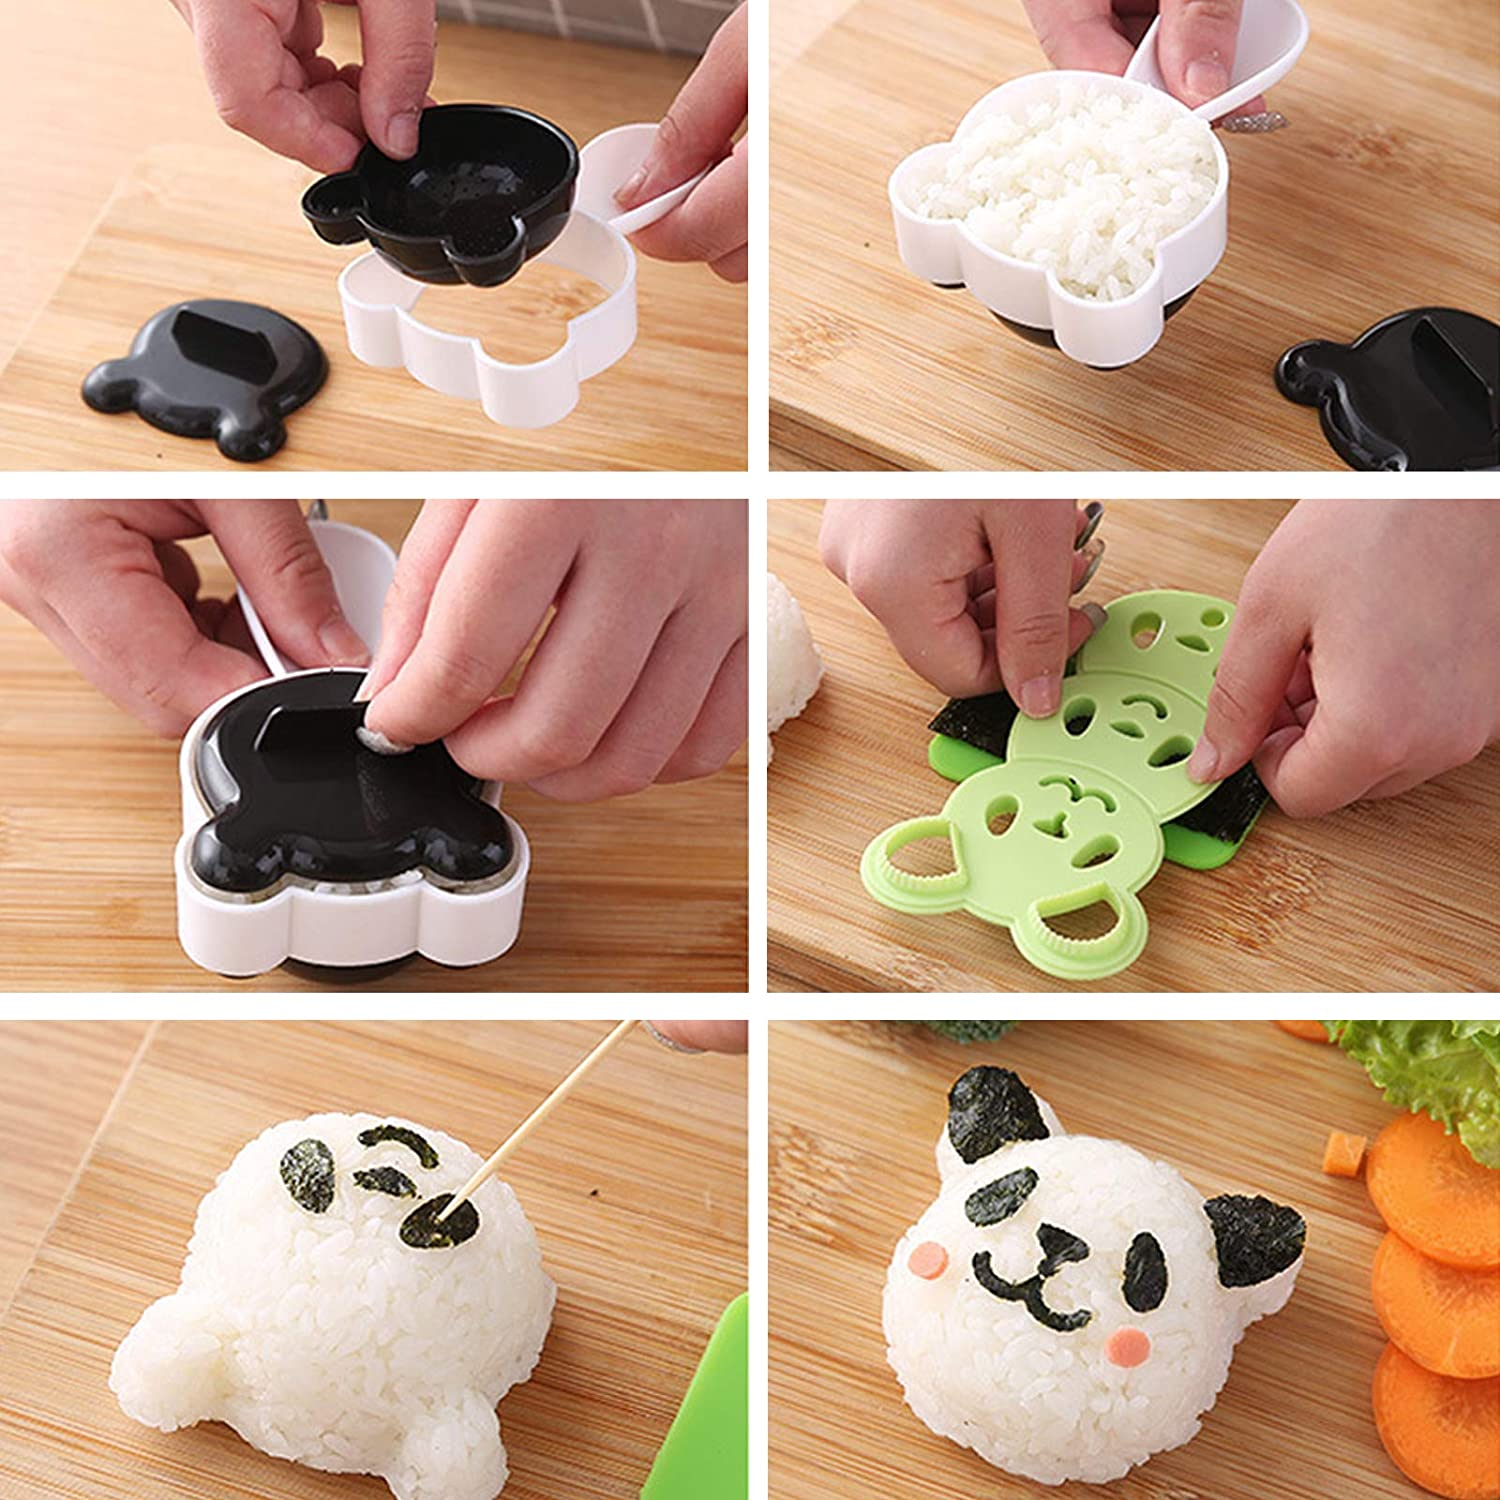 Camping Etc Home for Sushi Restaurants Office Panda Rice Ball Mold Sushi Shaper Kit Rice Ball Bento Presses Mold Sushi Cooking Practical Tool Safe Healthy Non-Stick Surface Easy to Clean